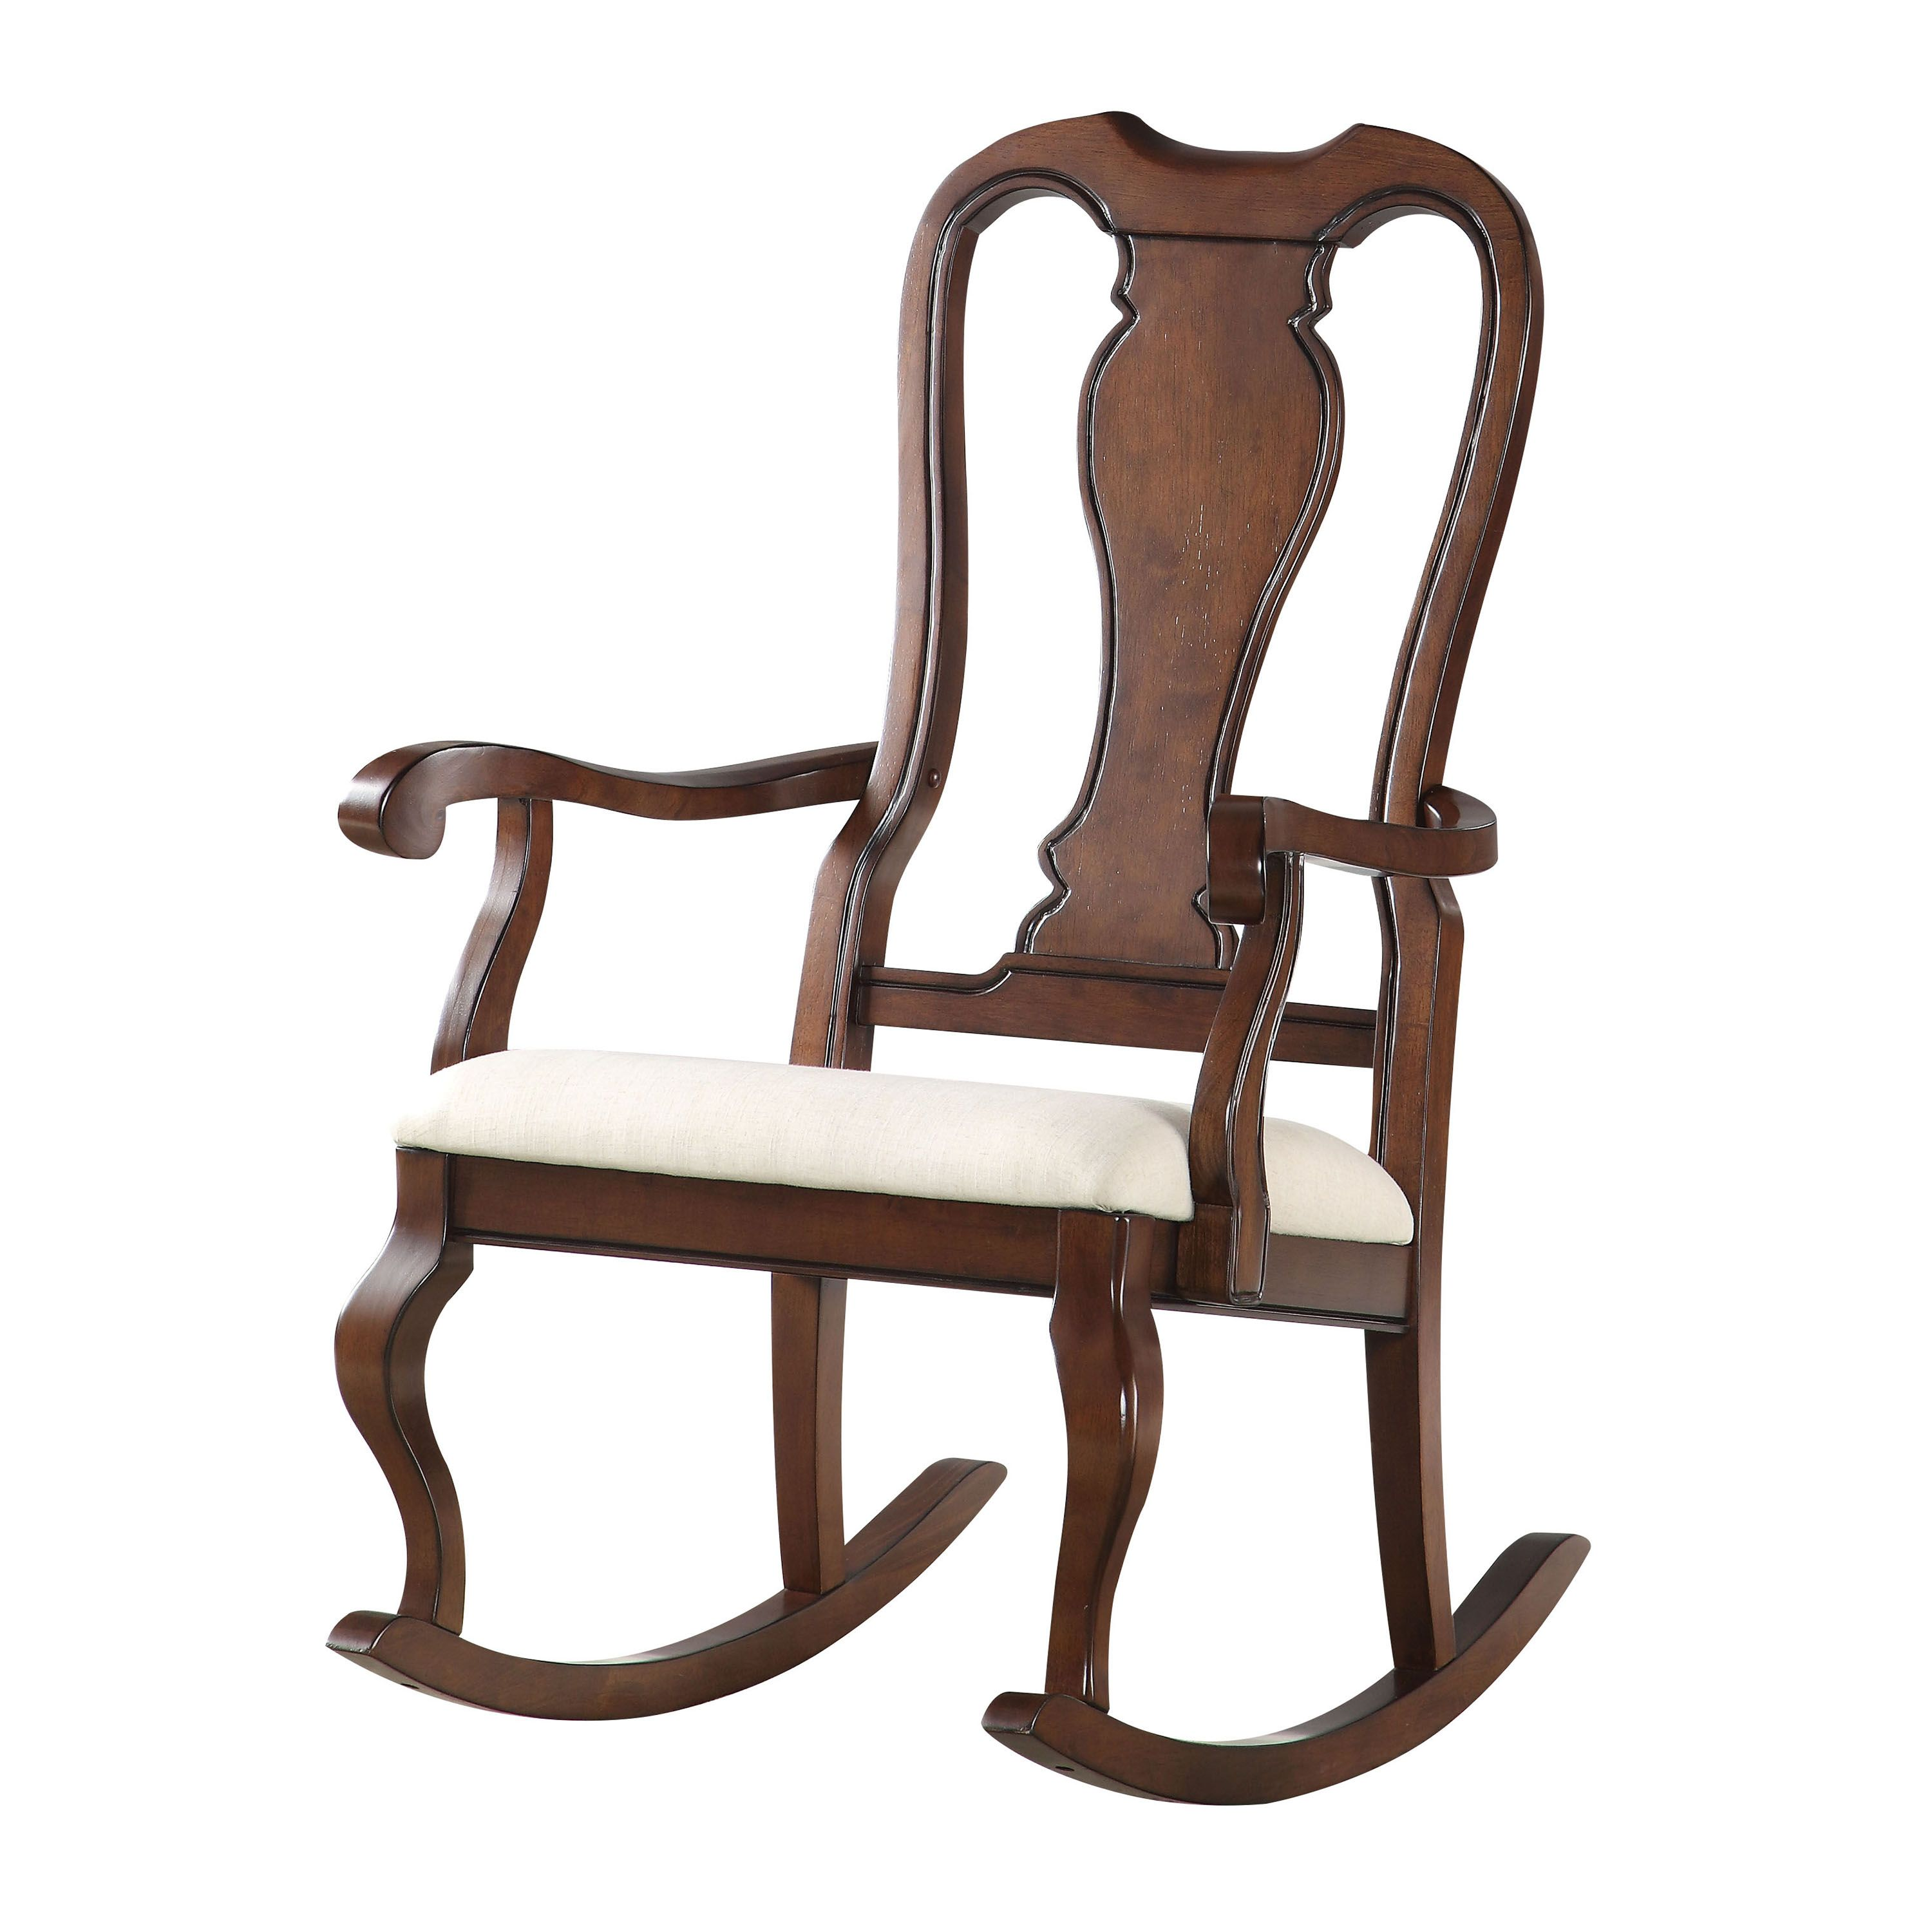 Better Homes & Gardens Shaker Patio Rocking Chair in Black